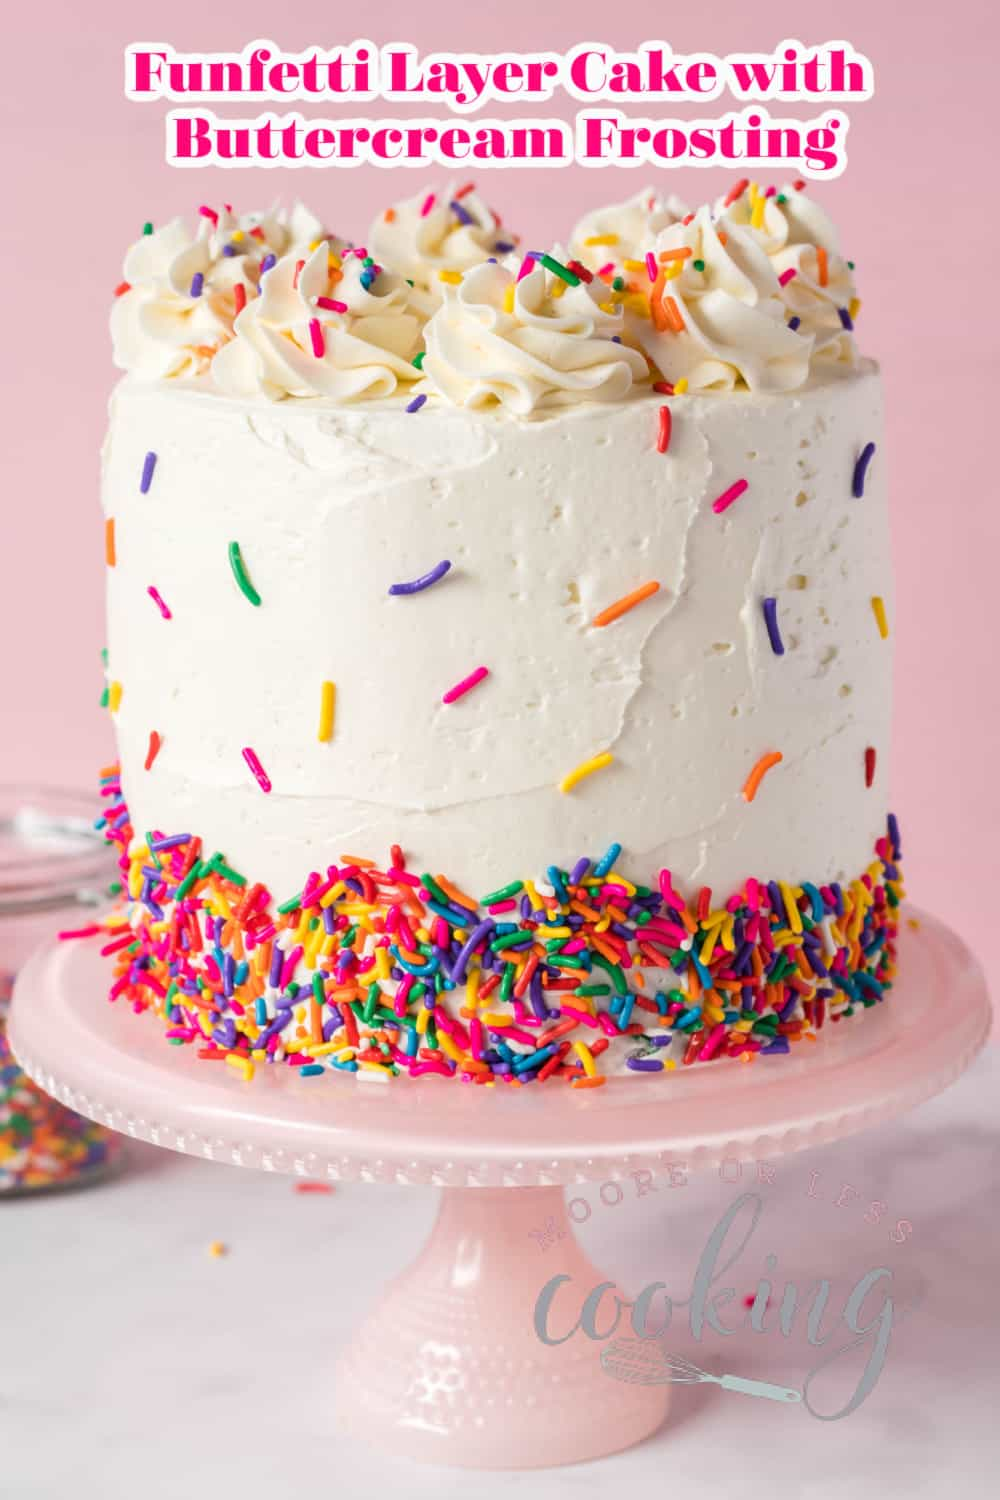 If you're looking for a showstopper of a cake, this Funfetti Layer Cake is it! Three layers of white cake are flecked with a baked-in rainbow of sprinkles that are iced with a rich vanilla buttercream frosting. More sprinkles decorate the outside of the Funfetti Cake for a colorful dessert that's perfect for any celebration! via @Mooreorlesscook